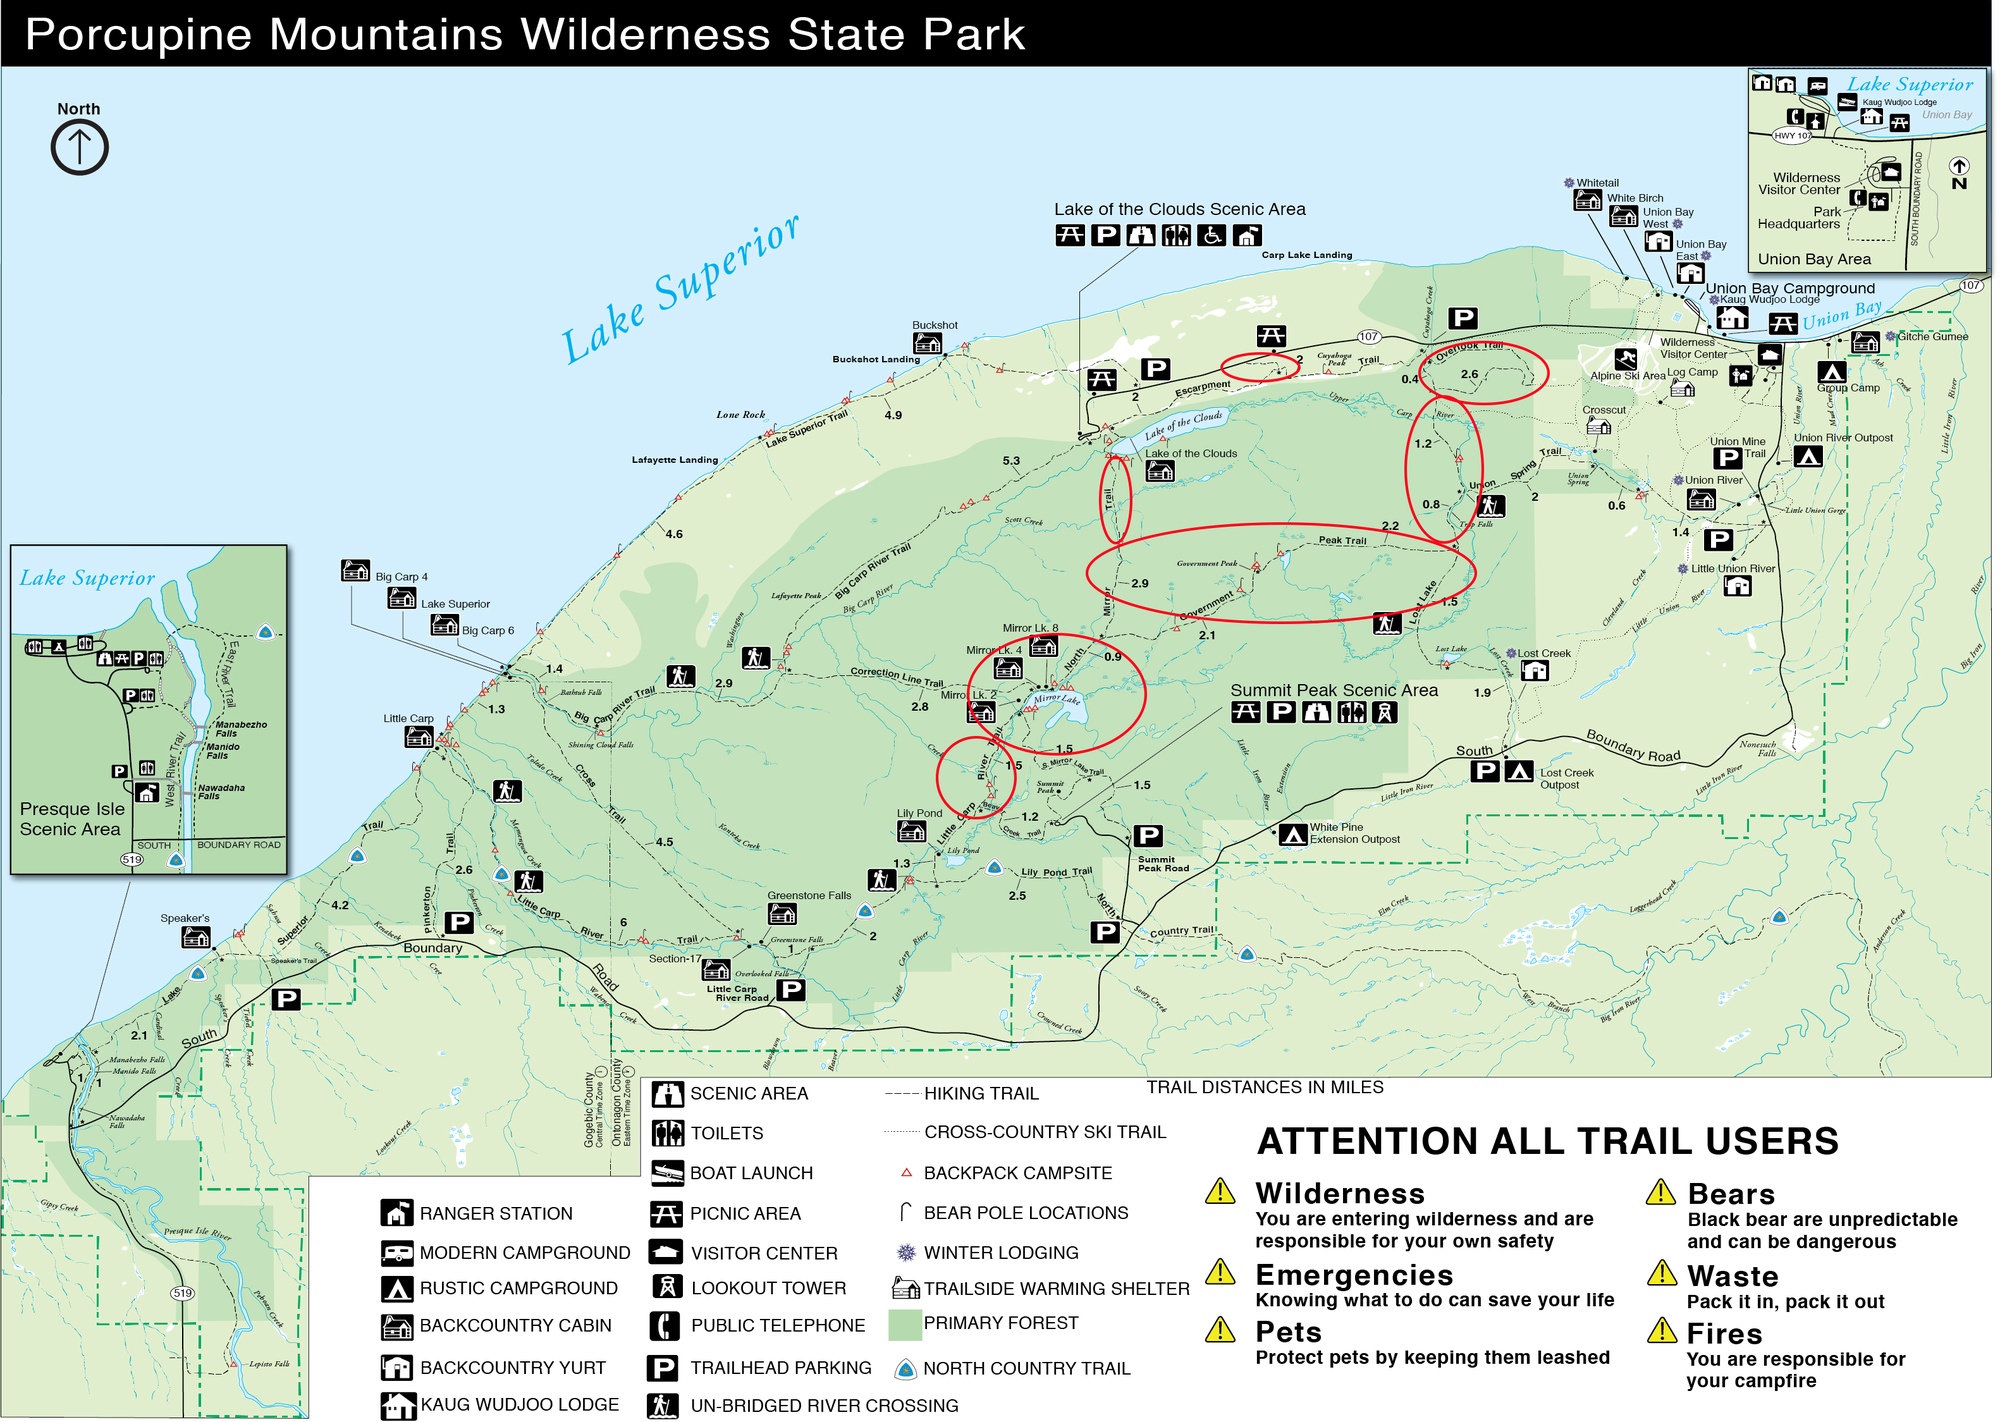 Red circles on a map depict the areas of greatest storm damage at Porcupine Mountains Wilderness State Park.